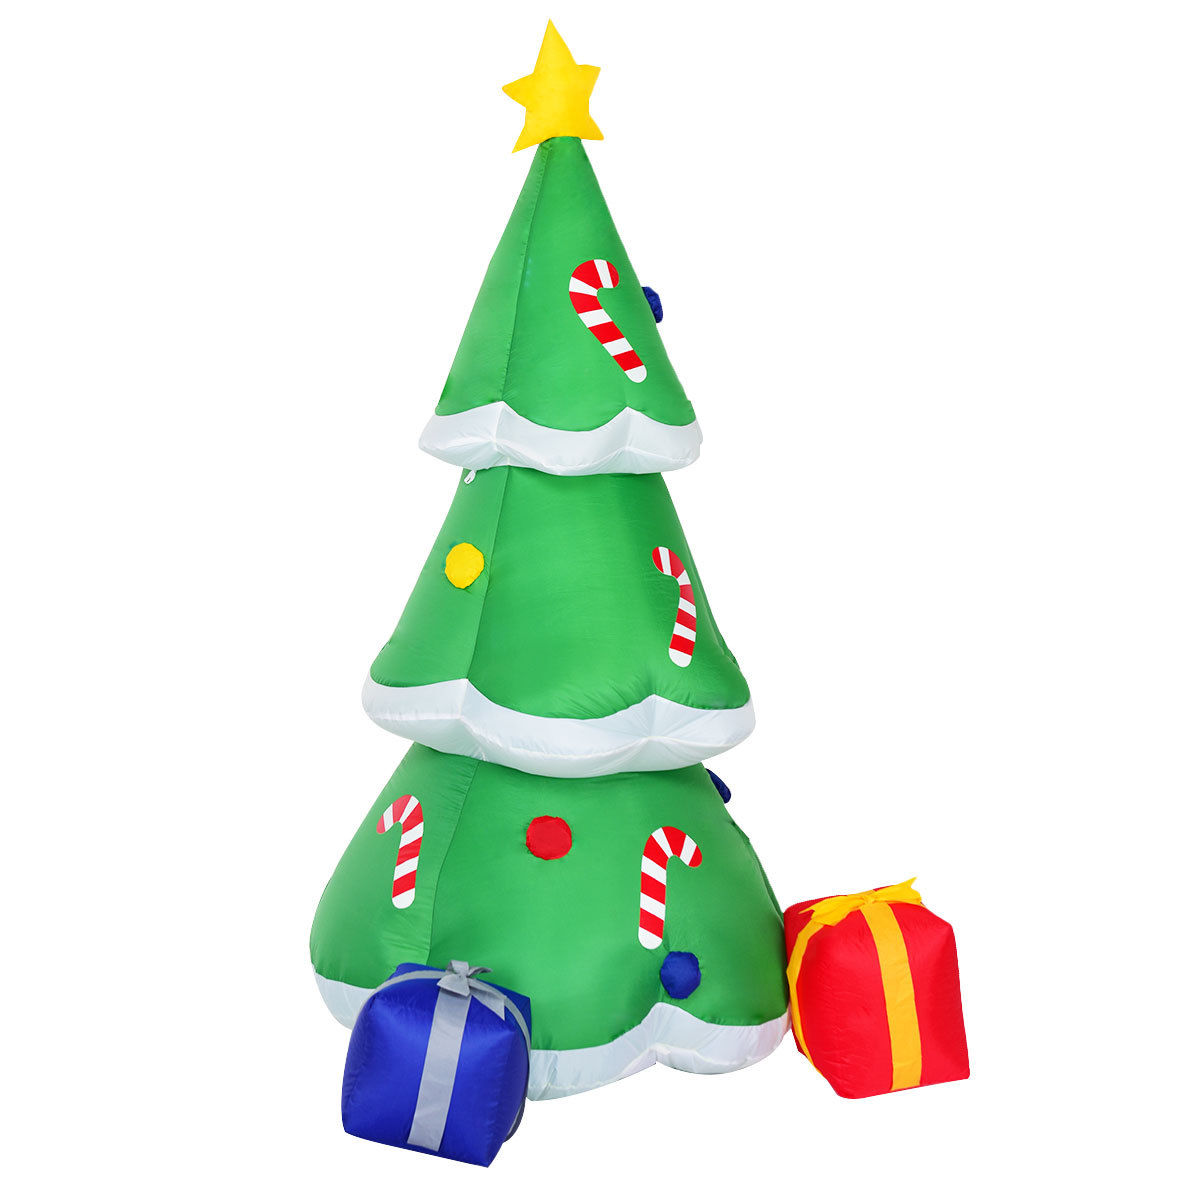 Gymax 6FT Inflatable Christmas Tree w/ Gift Boxes Lighted Christmas Decor - image 3 of 7